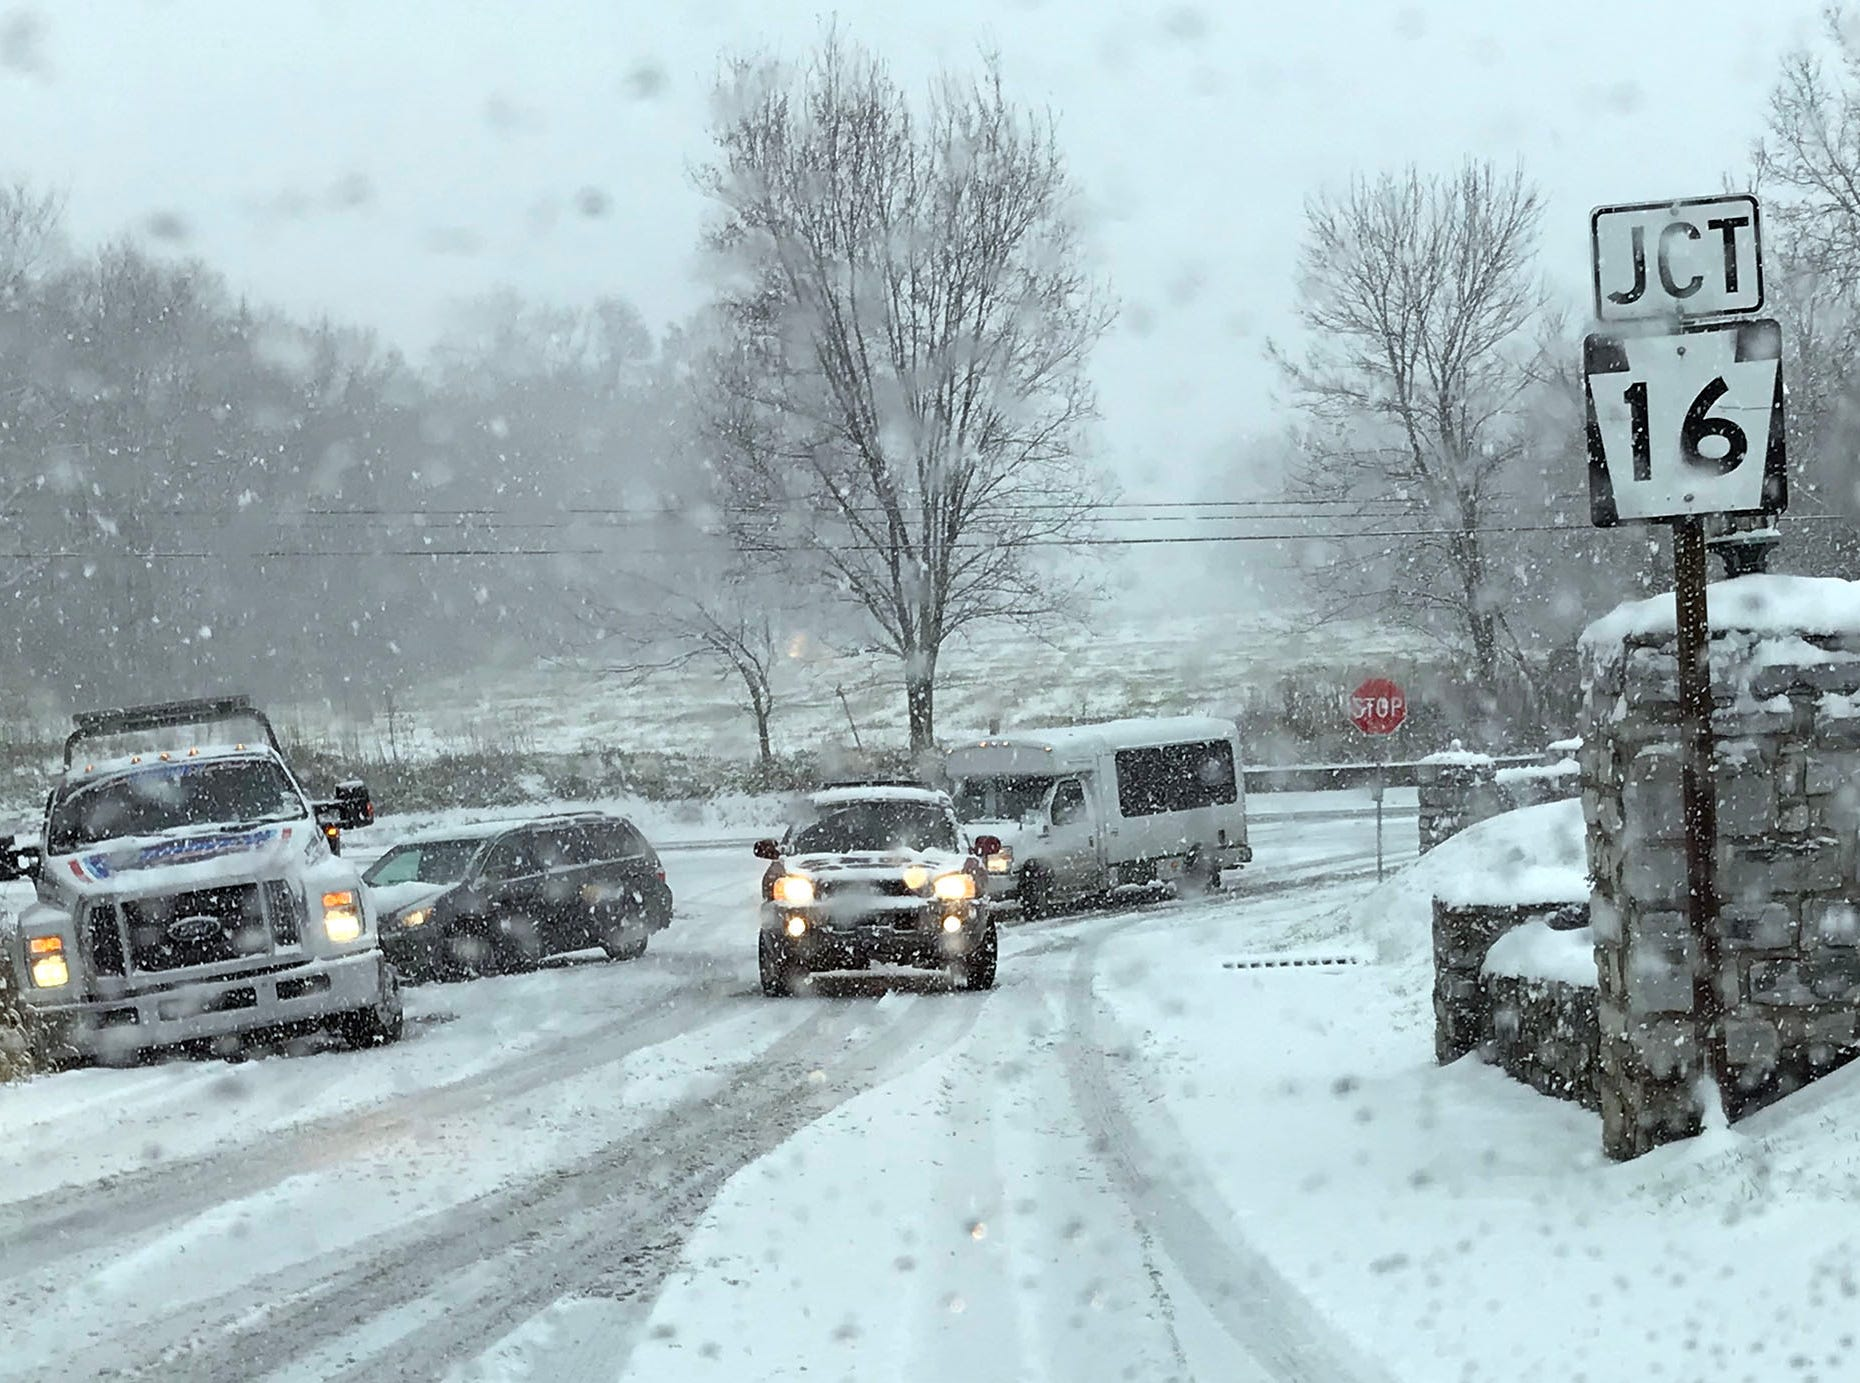 Vehicles have trouble getting up an icy hill in Wayne Castle off Pa. 16. Snow started in Franklin County on Thursday morning, November 15, 2018.